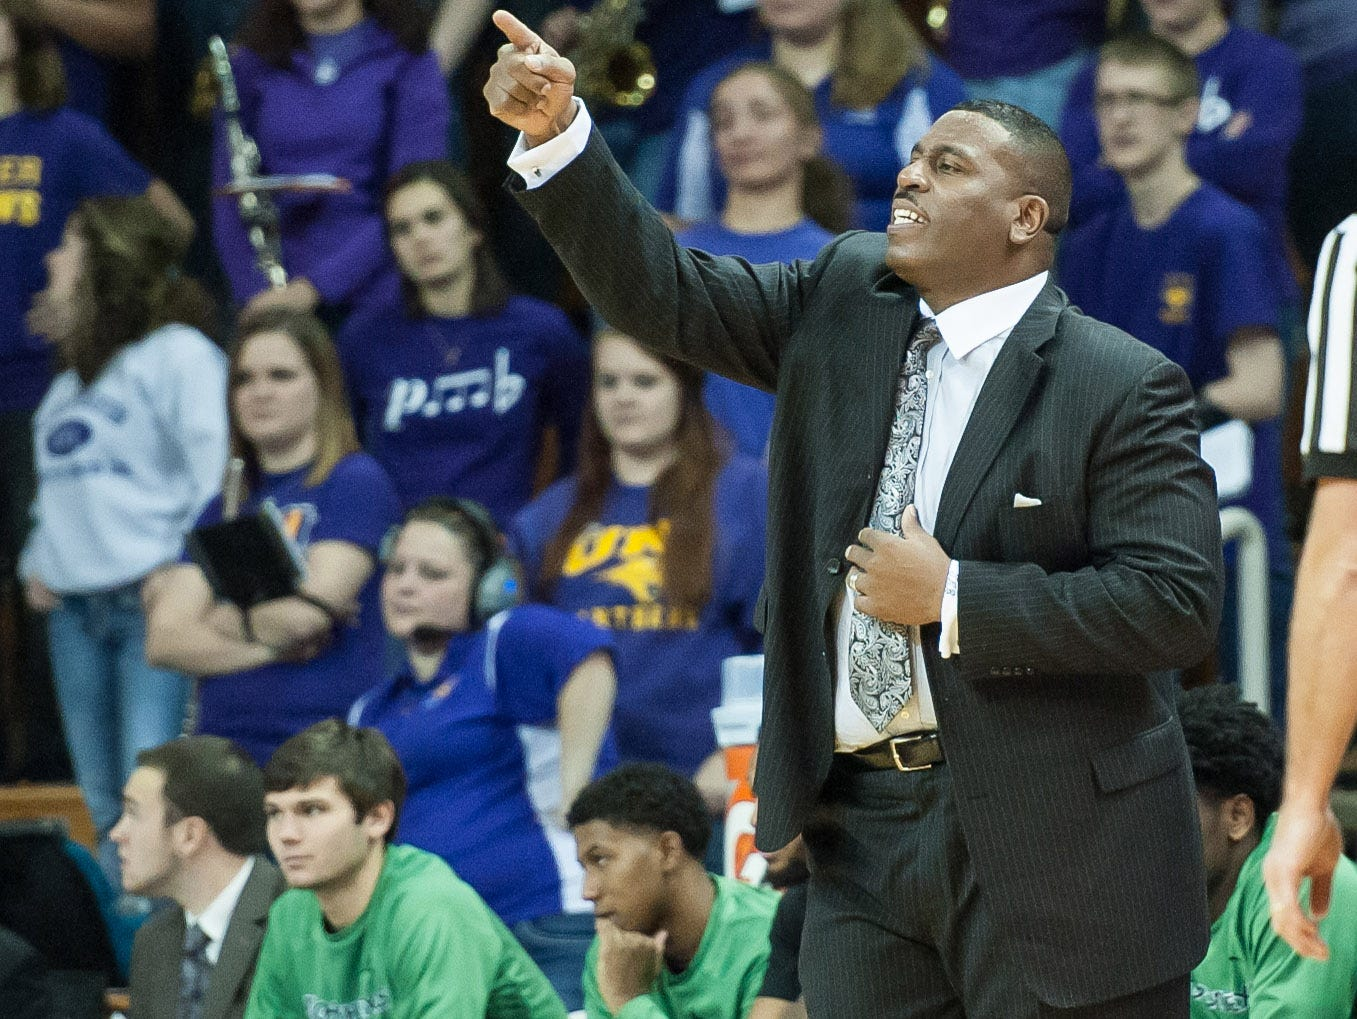 Nov 30, 2015; Cedar Falls, IA, USA; North Texas Mean Green head coach Tony Benford offers instructions during the second half against the Northern Iowa Panthers at McLeod Center. Northern Iowa won 93-70. Mandatory Credit: Jeffrey Becker-USA TODAY Sports